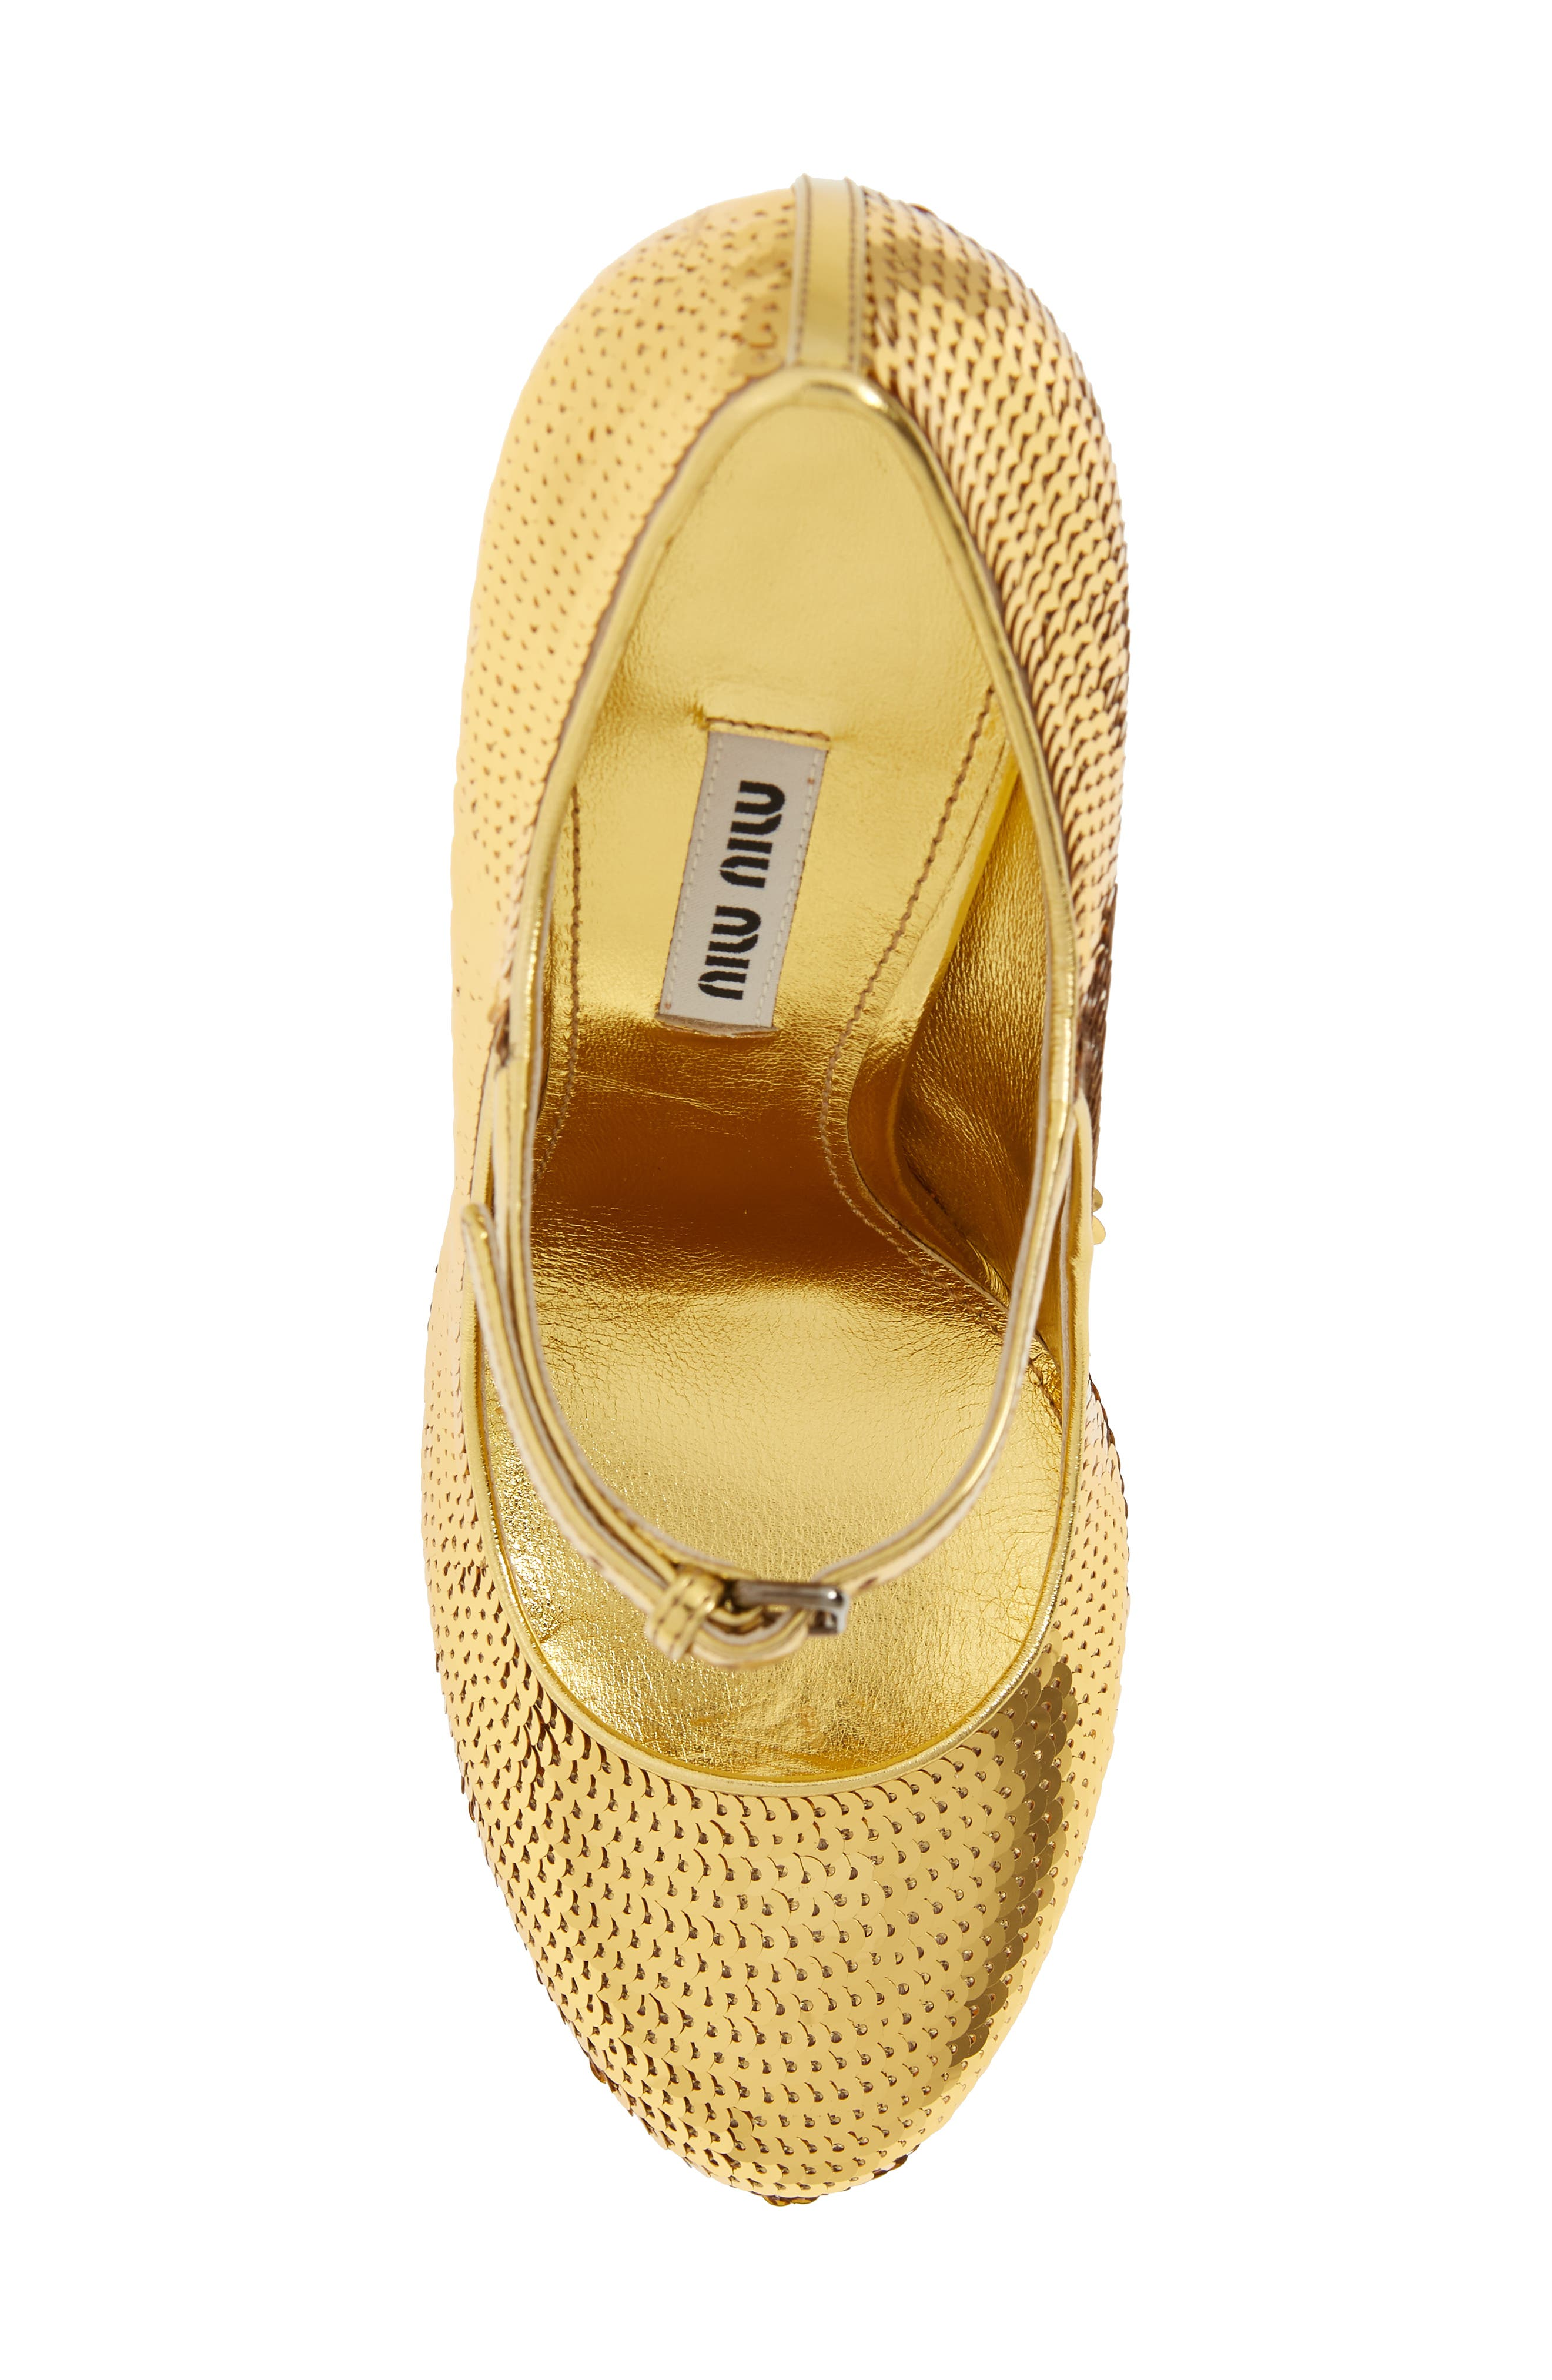 Sequin Mary Jane Pump,                             Alternate thumbnail 5, color,                             GOLD